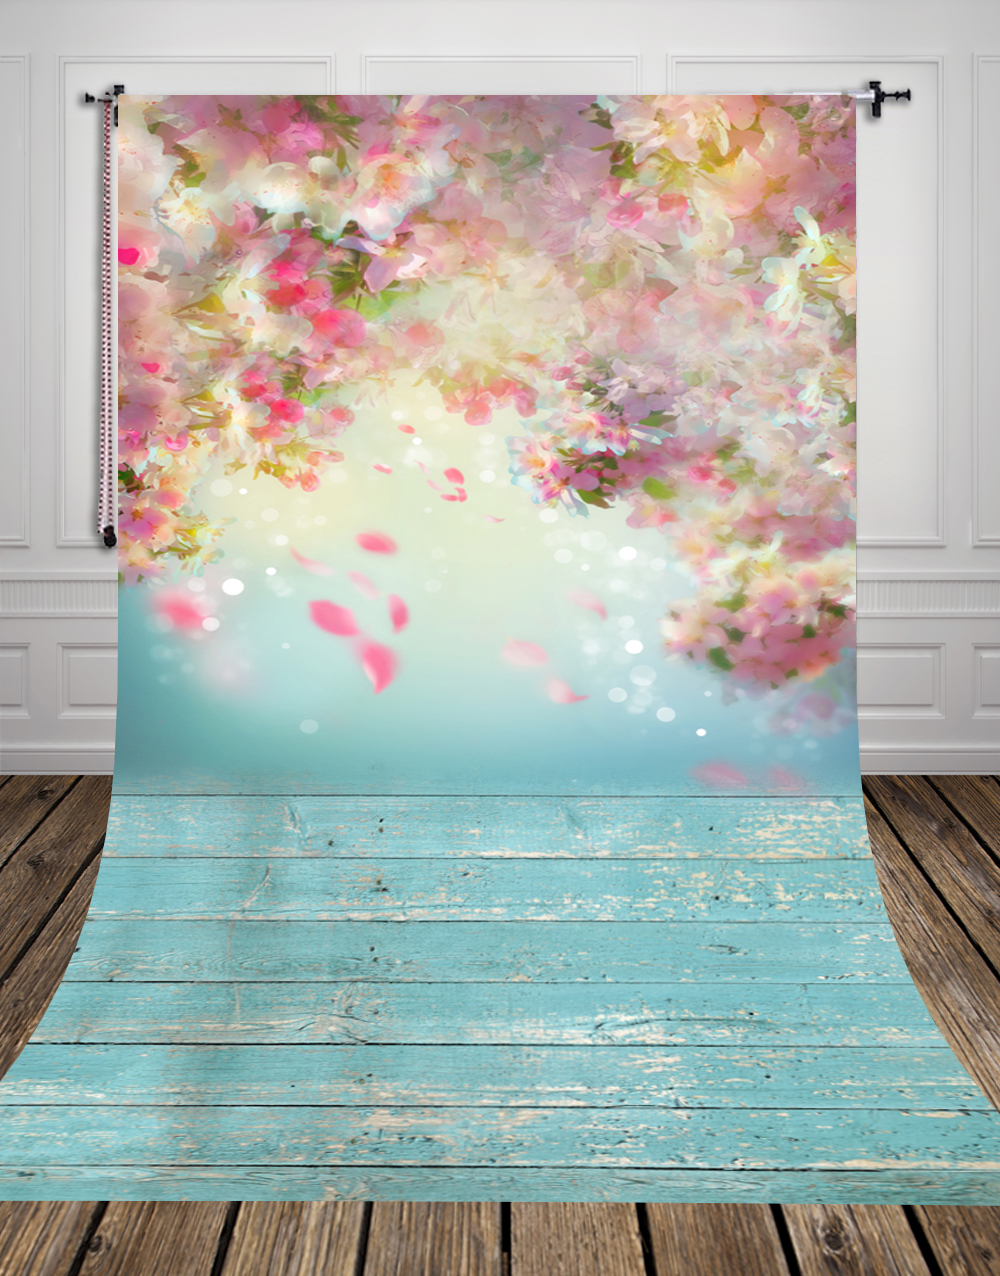 petal peach blossom printed baby photo backdrops Art fabric newborn wood backdrops for studio photography background D-9923 300 200cm 10ft 6 5ft photography backdrops scattered horse petal branch